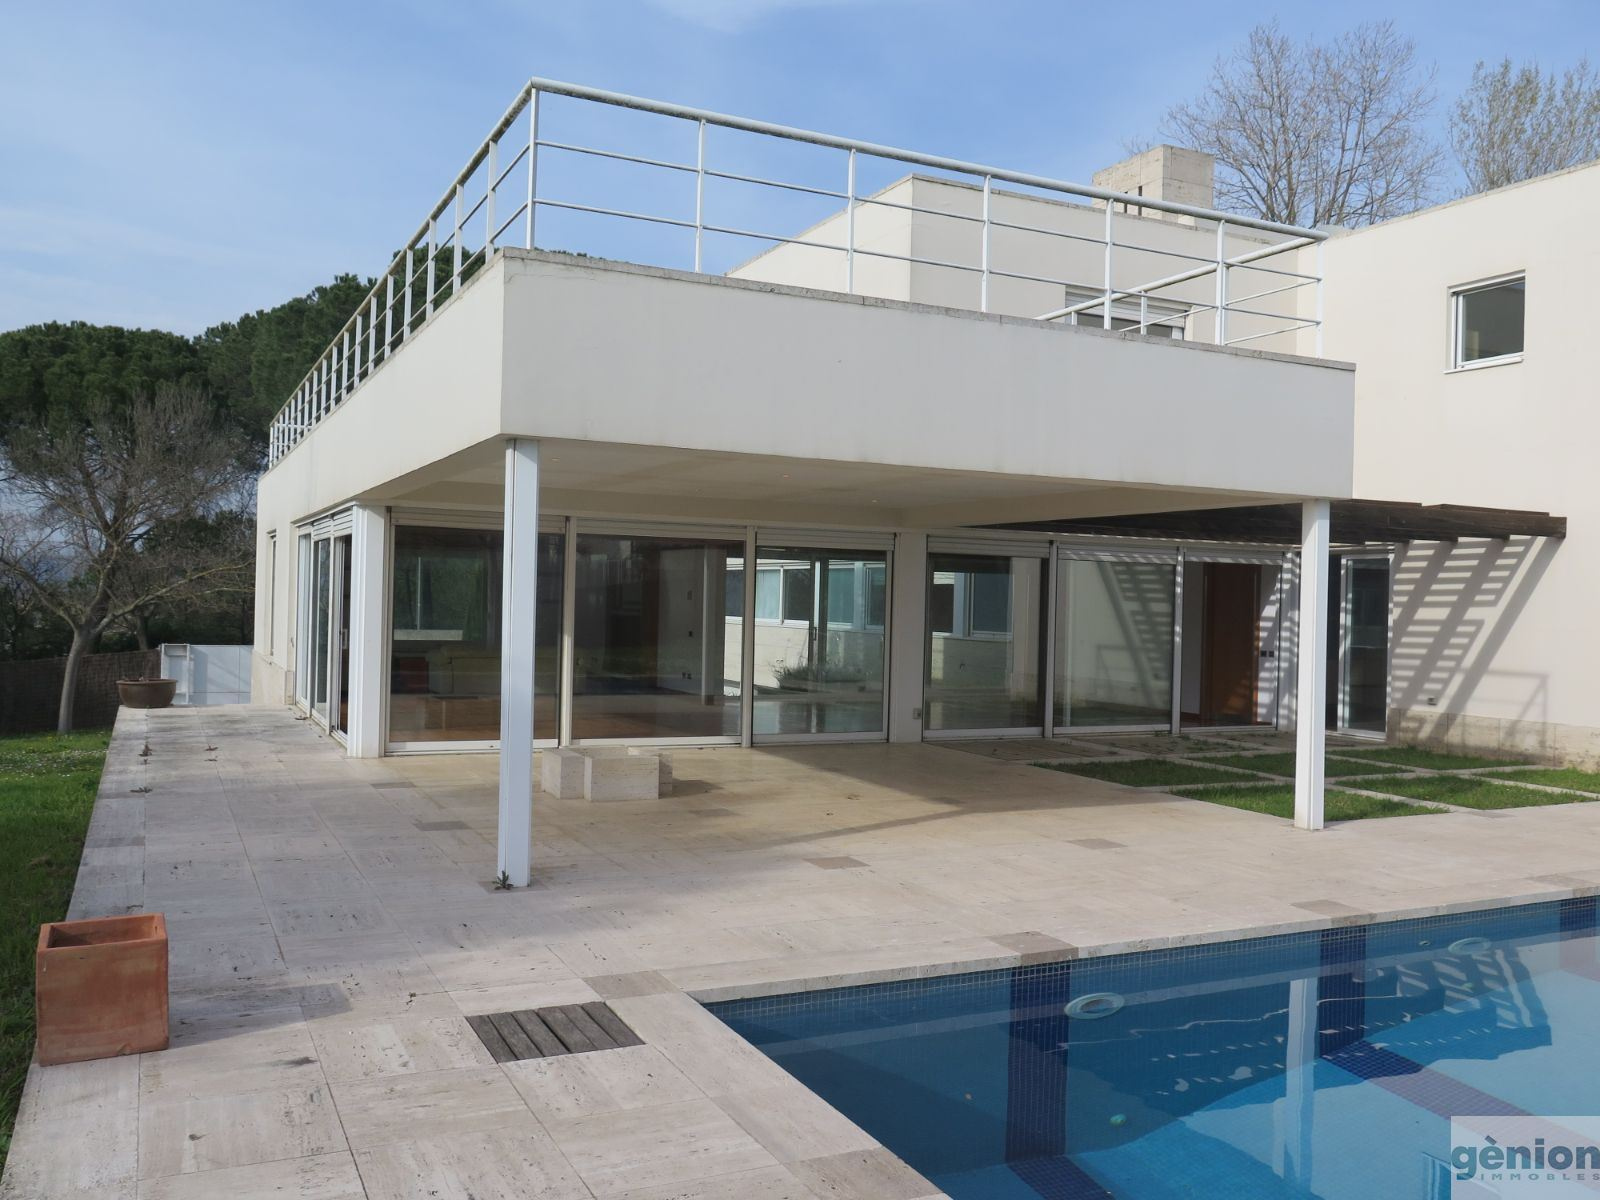 EXCLUSIVE HOUSE WITH A CONTEMPORARY ARCHITECTURE DESIGN IN PUIGVISTÓS, GIRONA